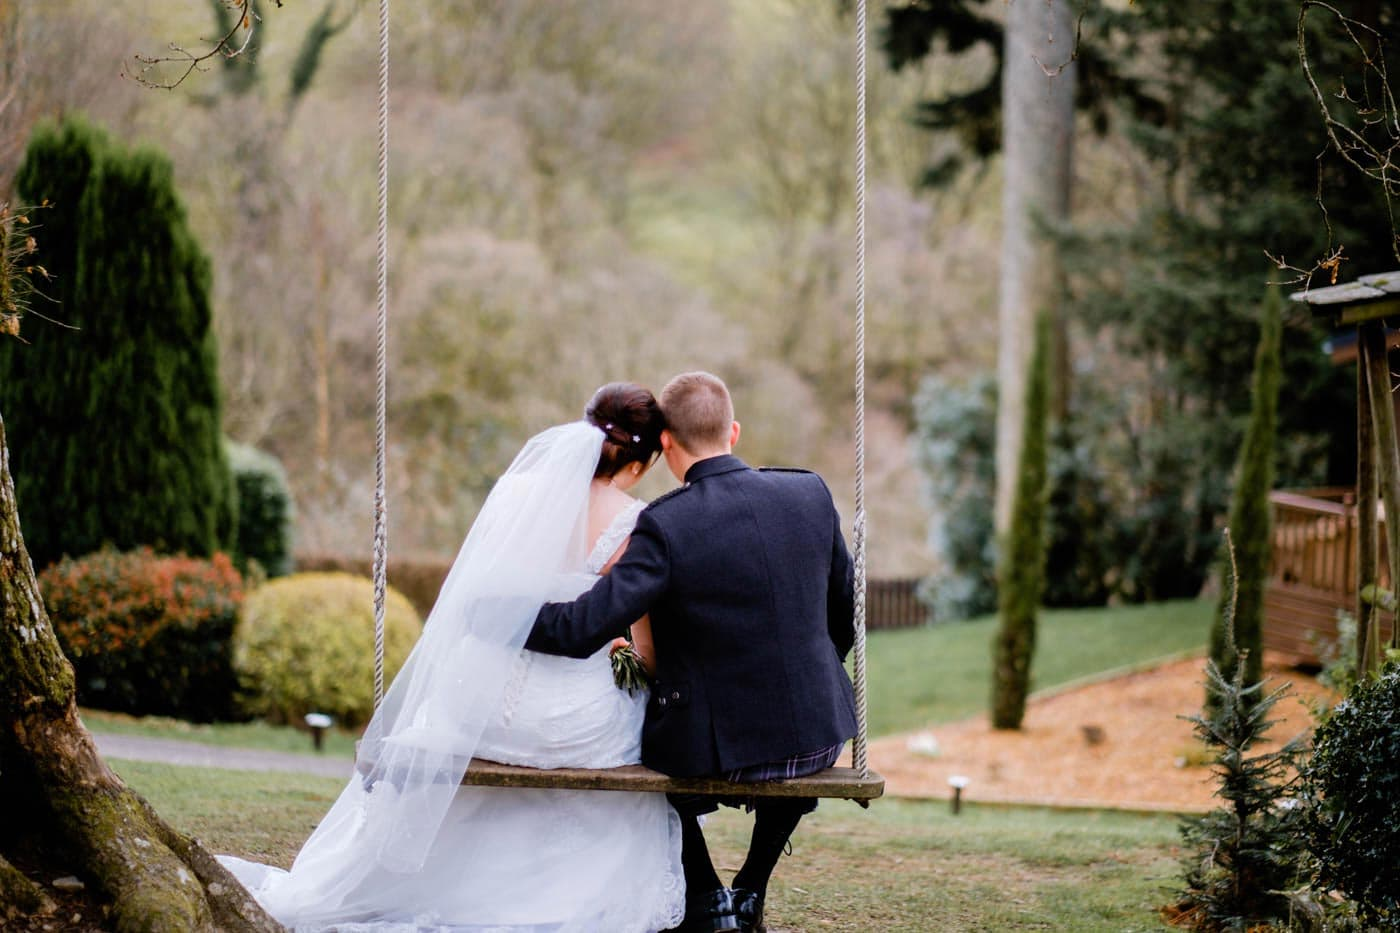 Bride and groom together on on swing at Broadoaks Country House by Lake District wedding photographer Clive Blair Photography